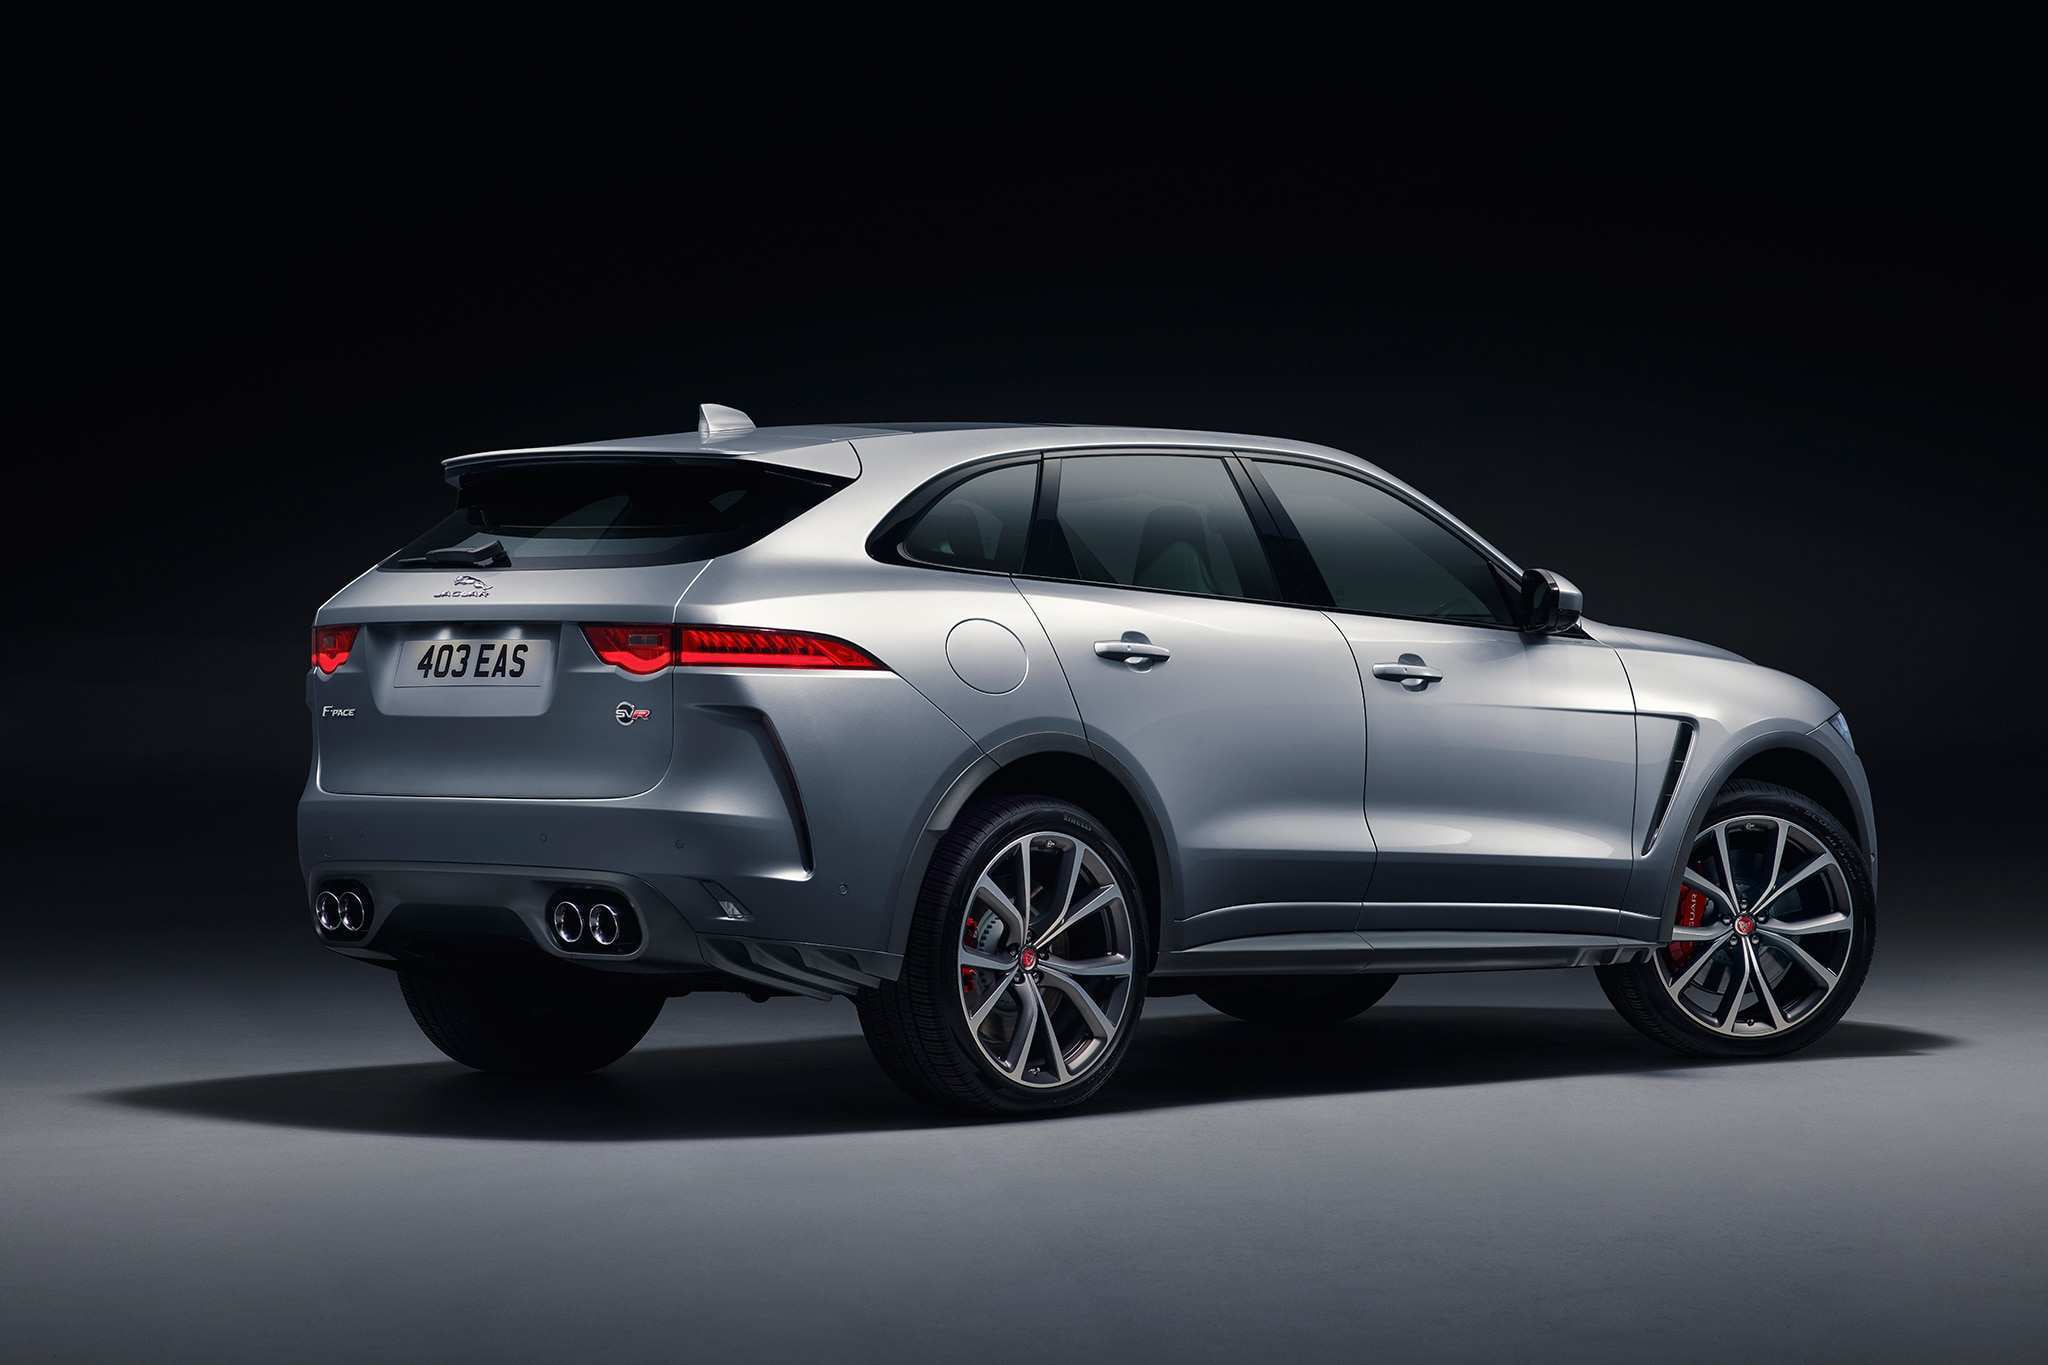 30 Concept of 2019 Jaguar F Pace Changes New Review by 2019 Jaguar F Pace Changes